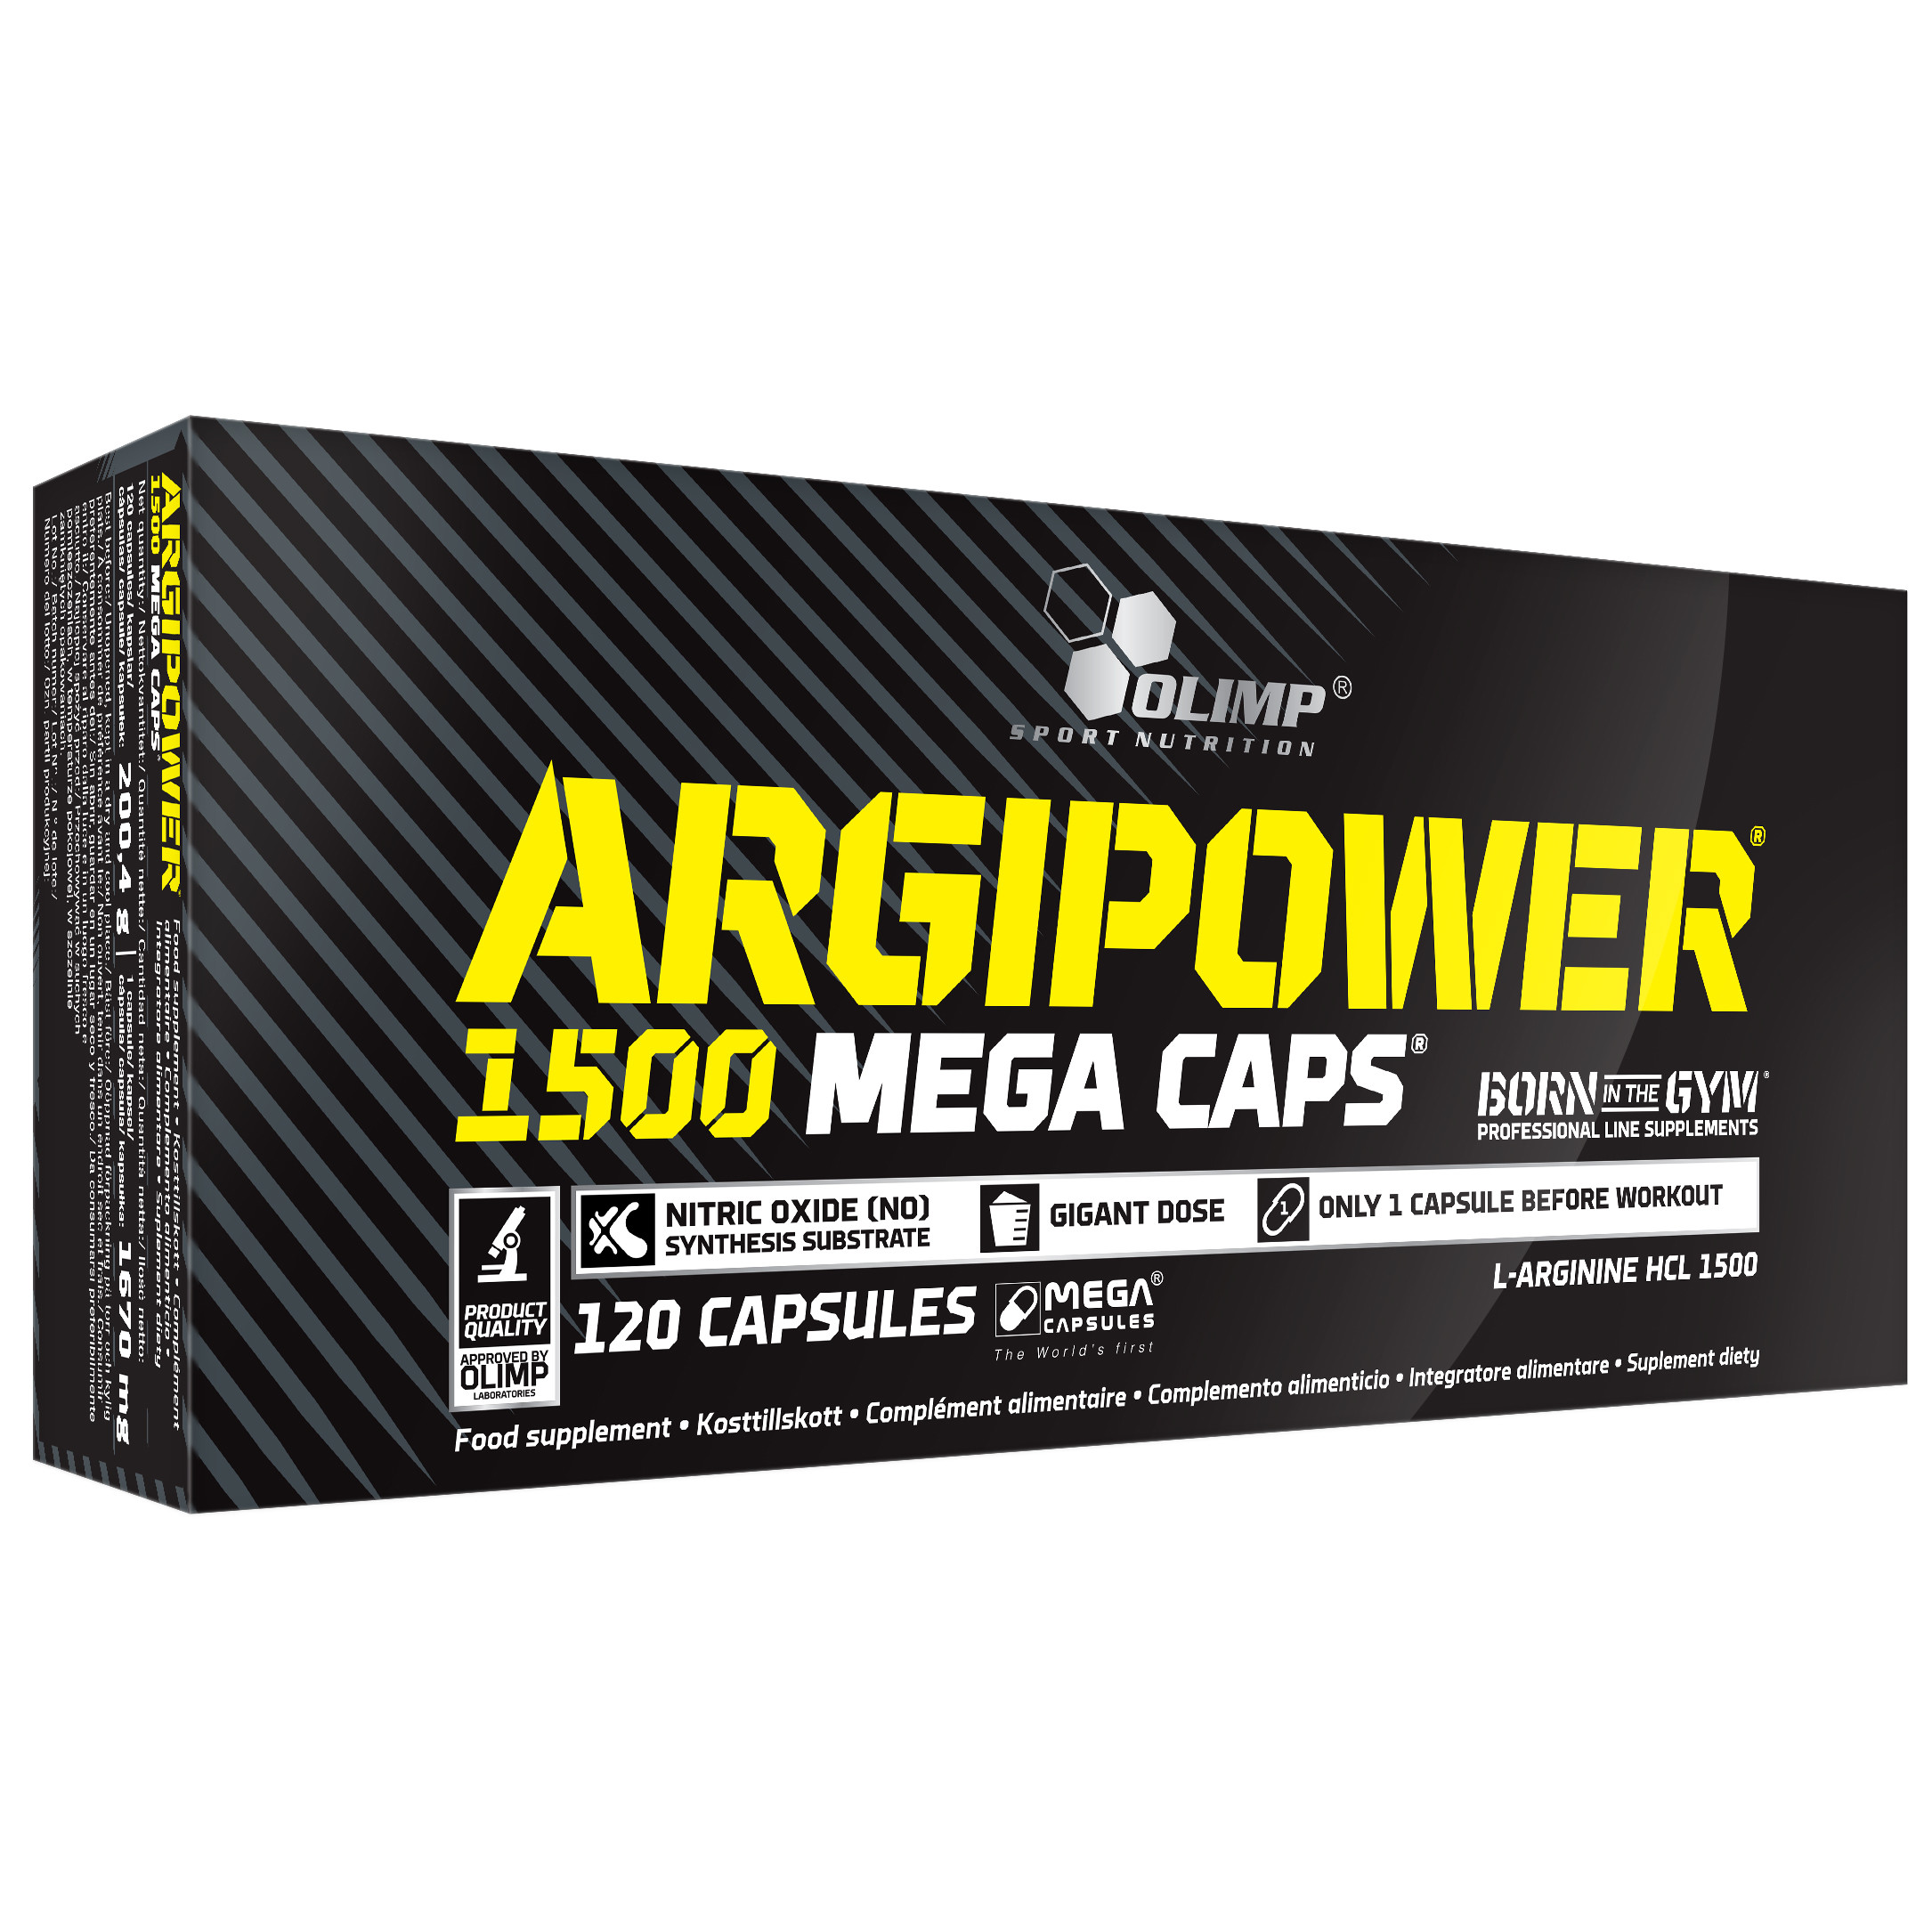 Argipower 1500 Mega Caps Olimp Sport Nutrition